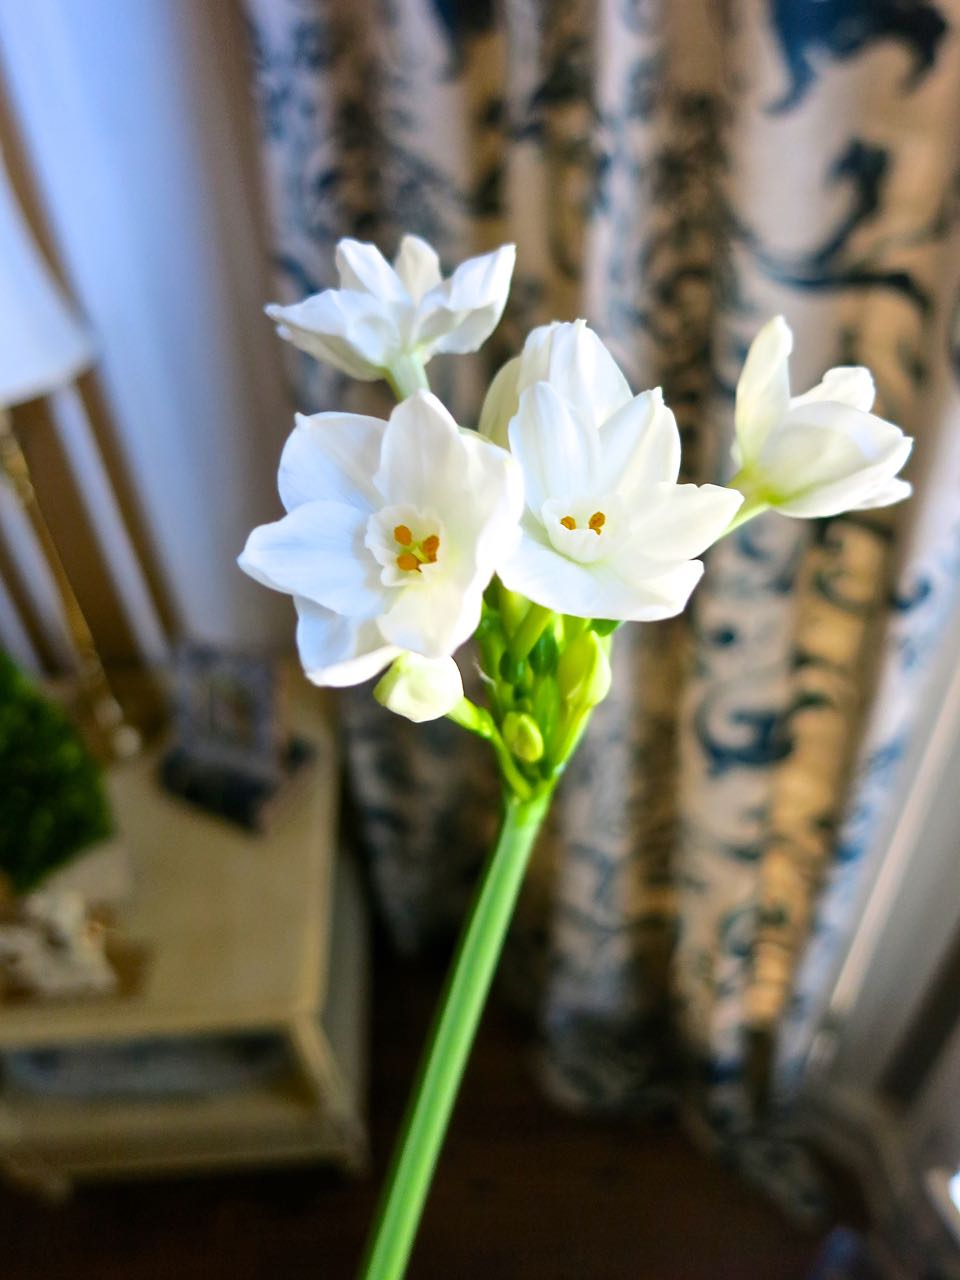 Growing Paperwhites in time for the holidays. These pretty delicate flowers are so easy to grow. You can get creative with your growing containers too!